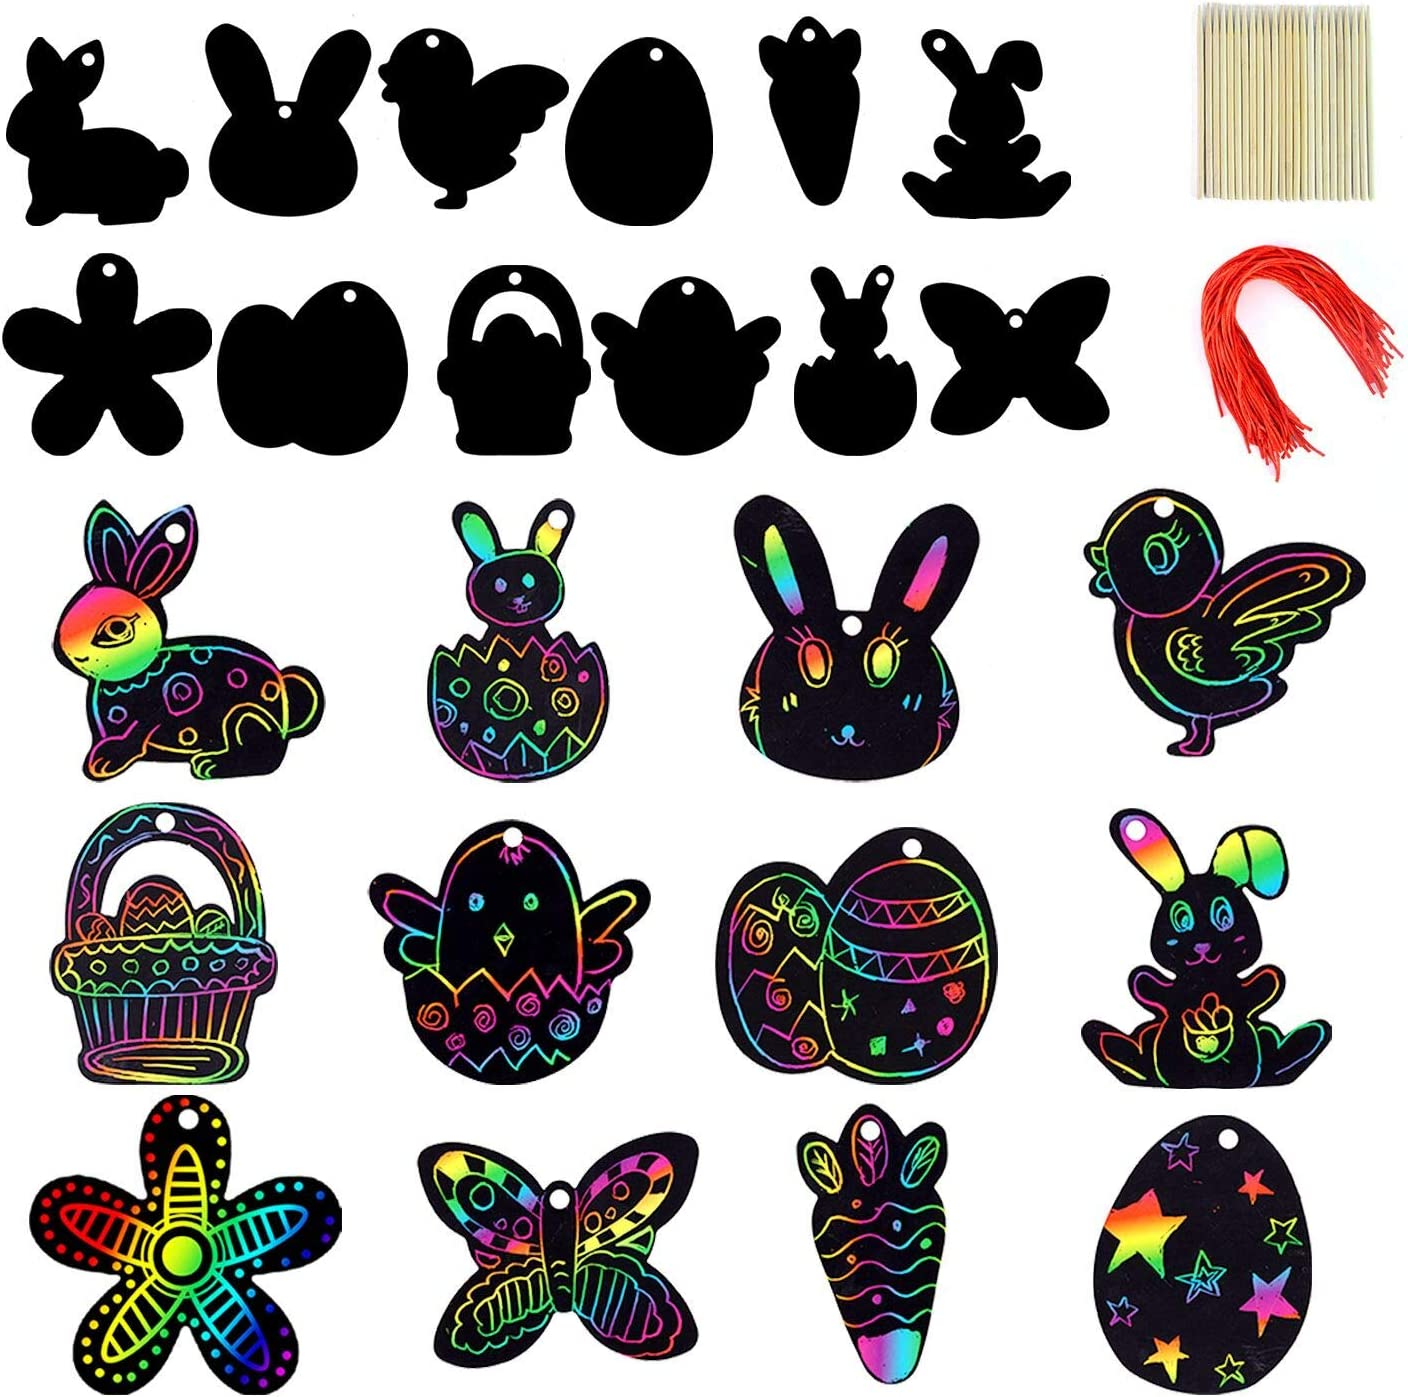 72 Pcs Easter Scratch Paper Set (12 Designs) Rainbow Scratch Art Easter Crafts Kit for Kids with Wooden Stick and Ribbon, Rainbow Color Scratch Ornaments for Home Tree Decor and Easter Party Favors